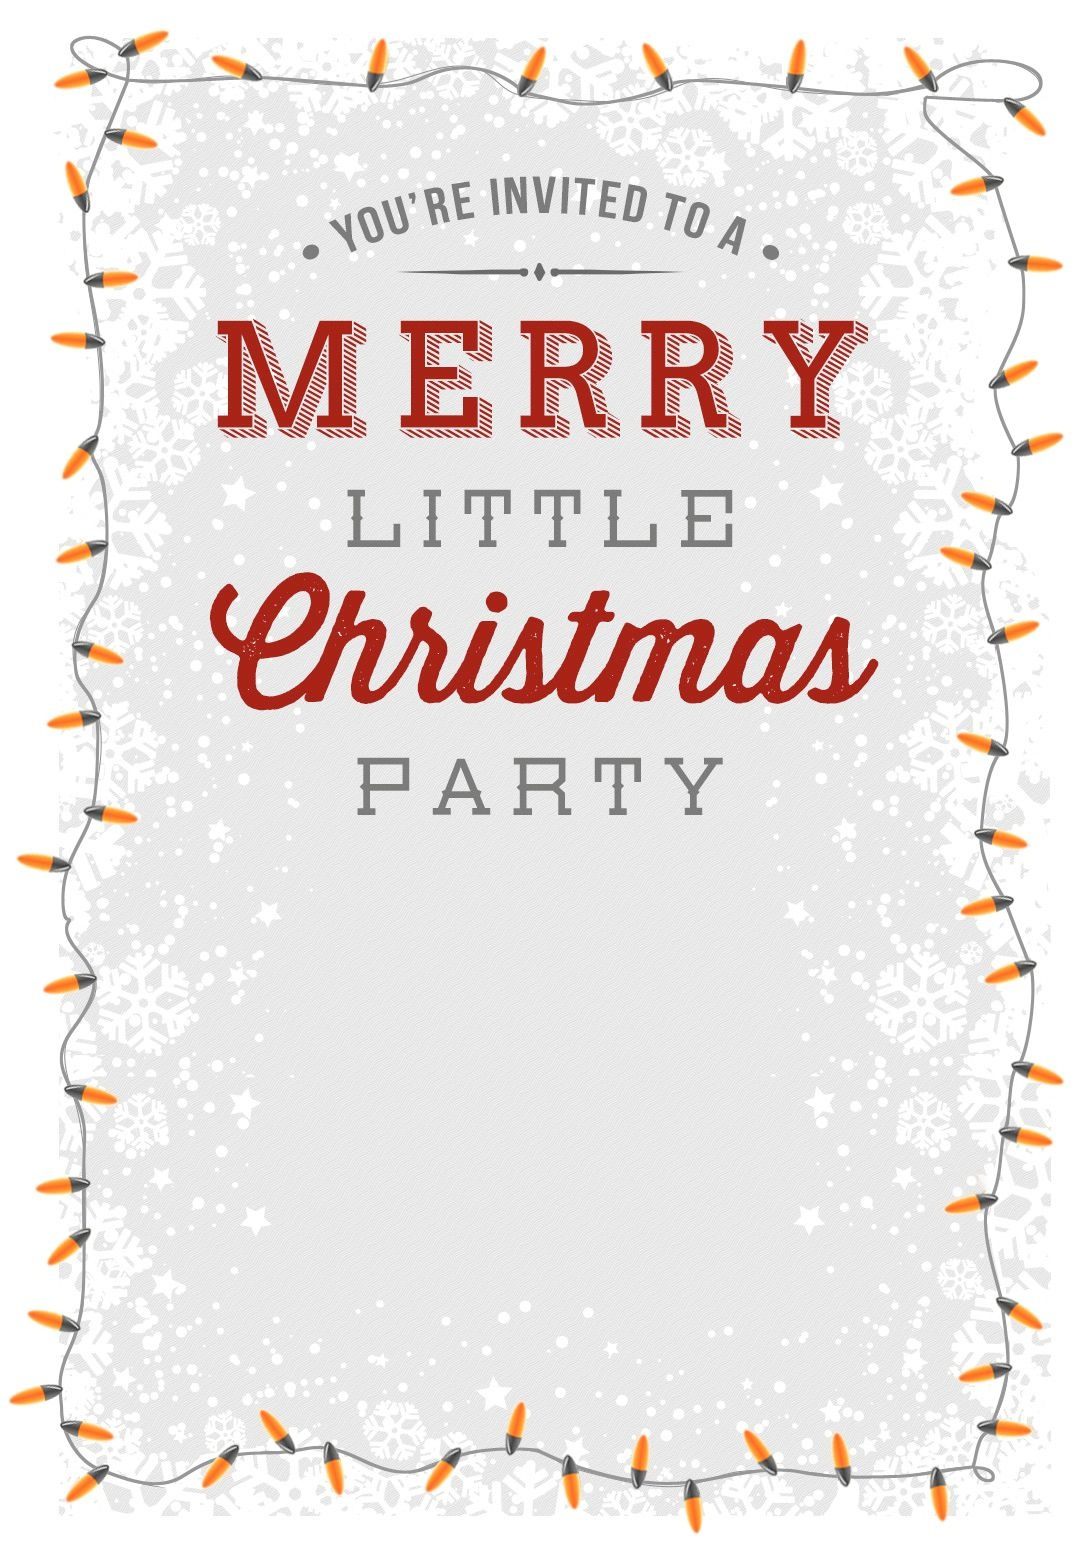 A Merry Little Party - Free Printable Christmas Invitation Template - Holiday Invitations Free Printable